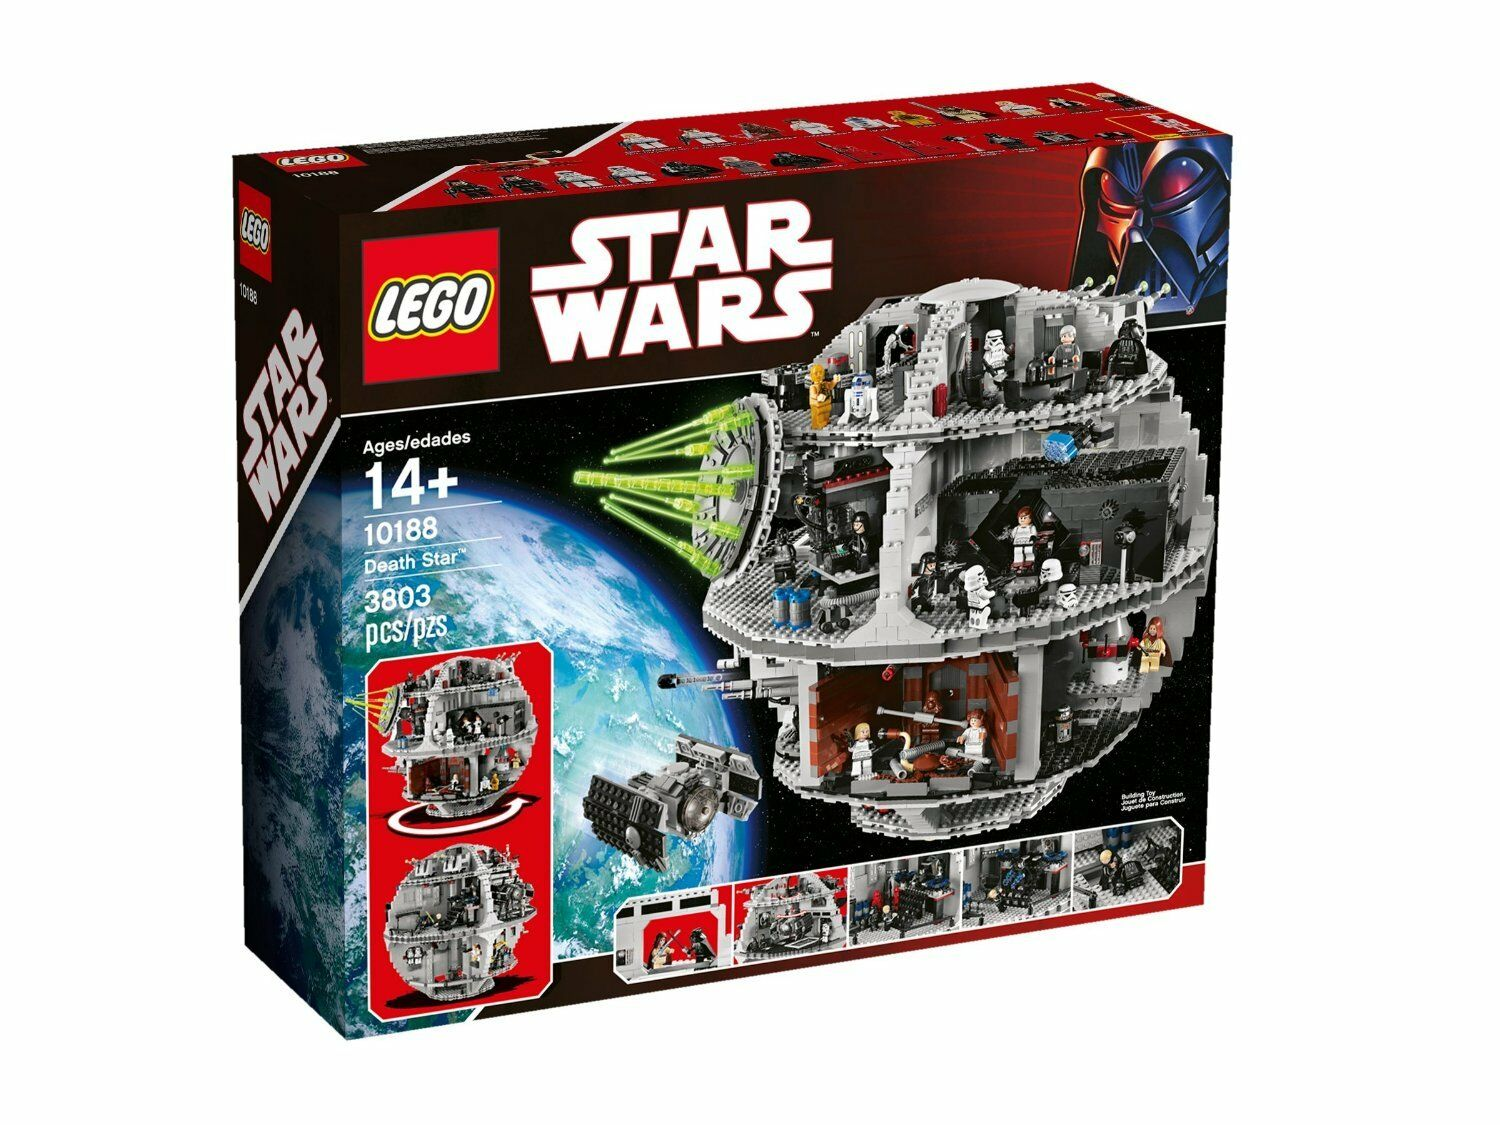 Lego Star Wars Death Star (10188) (interrompu par le fabricant)